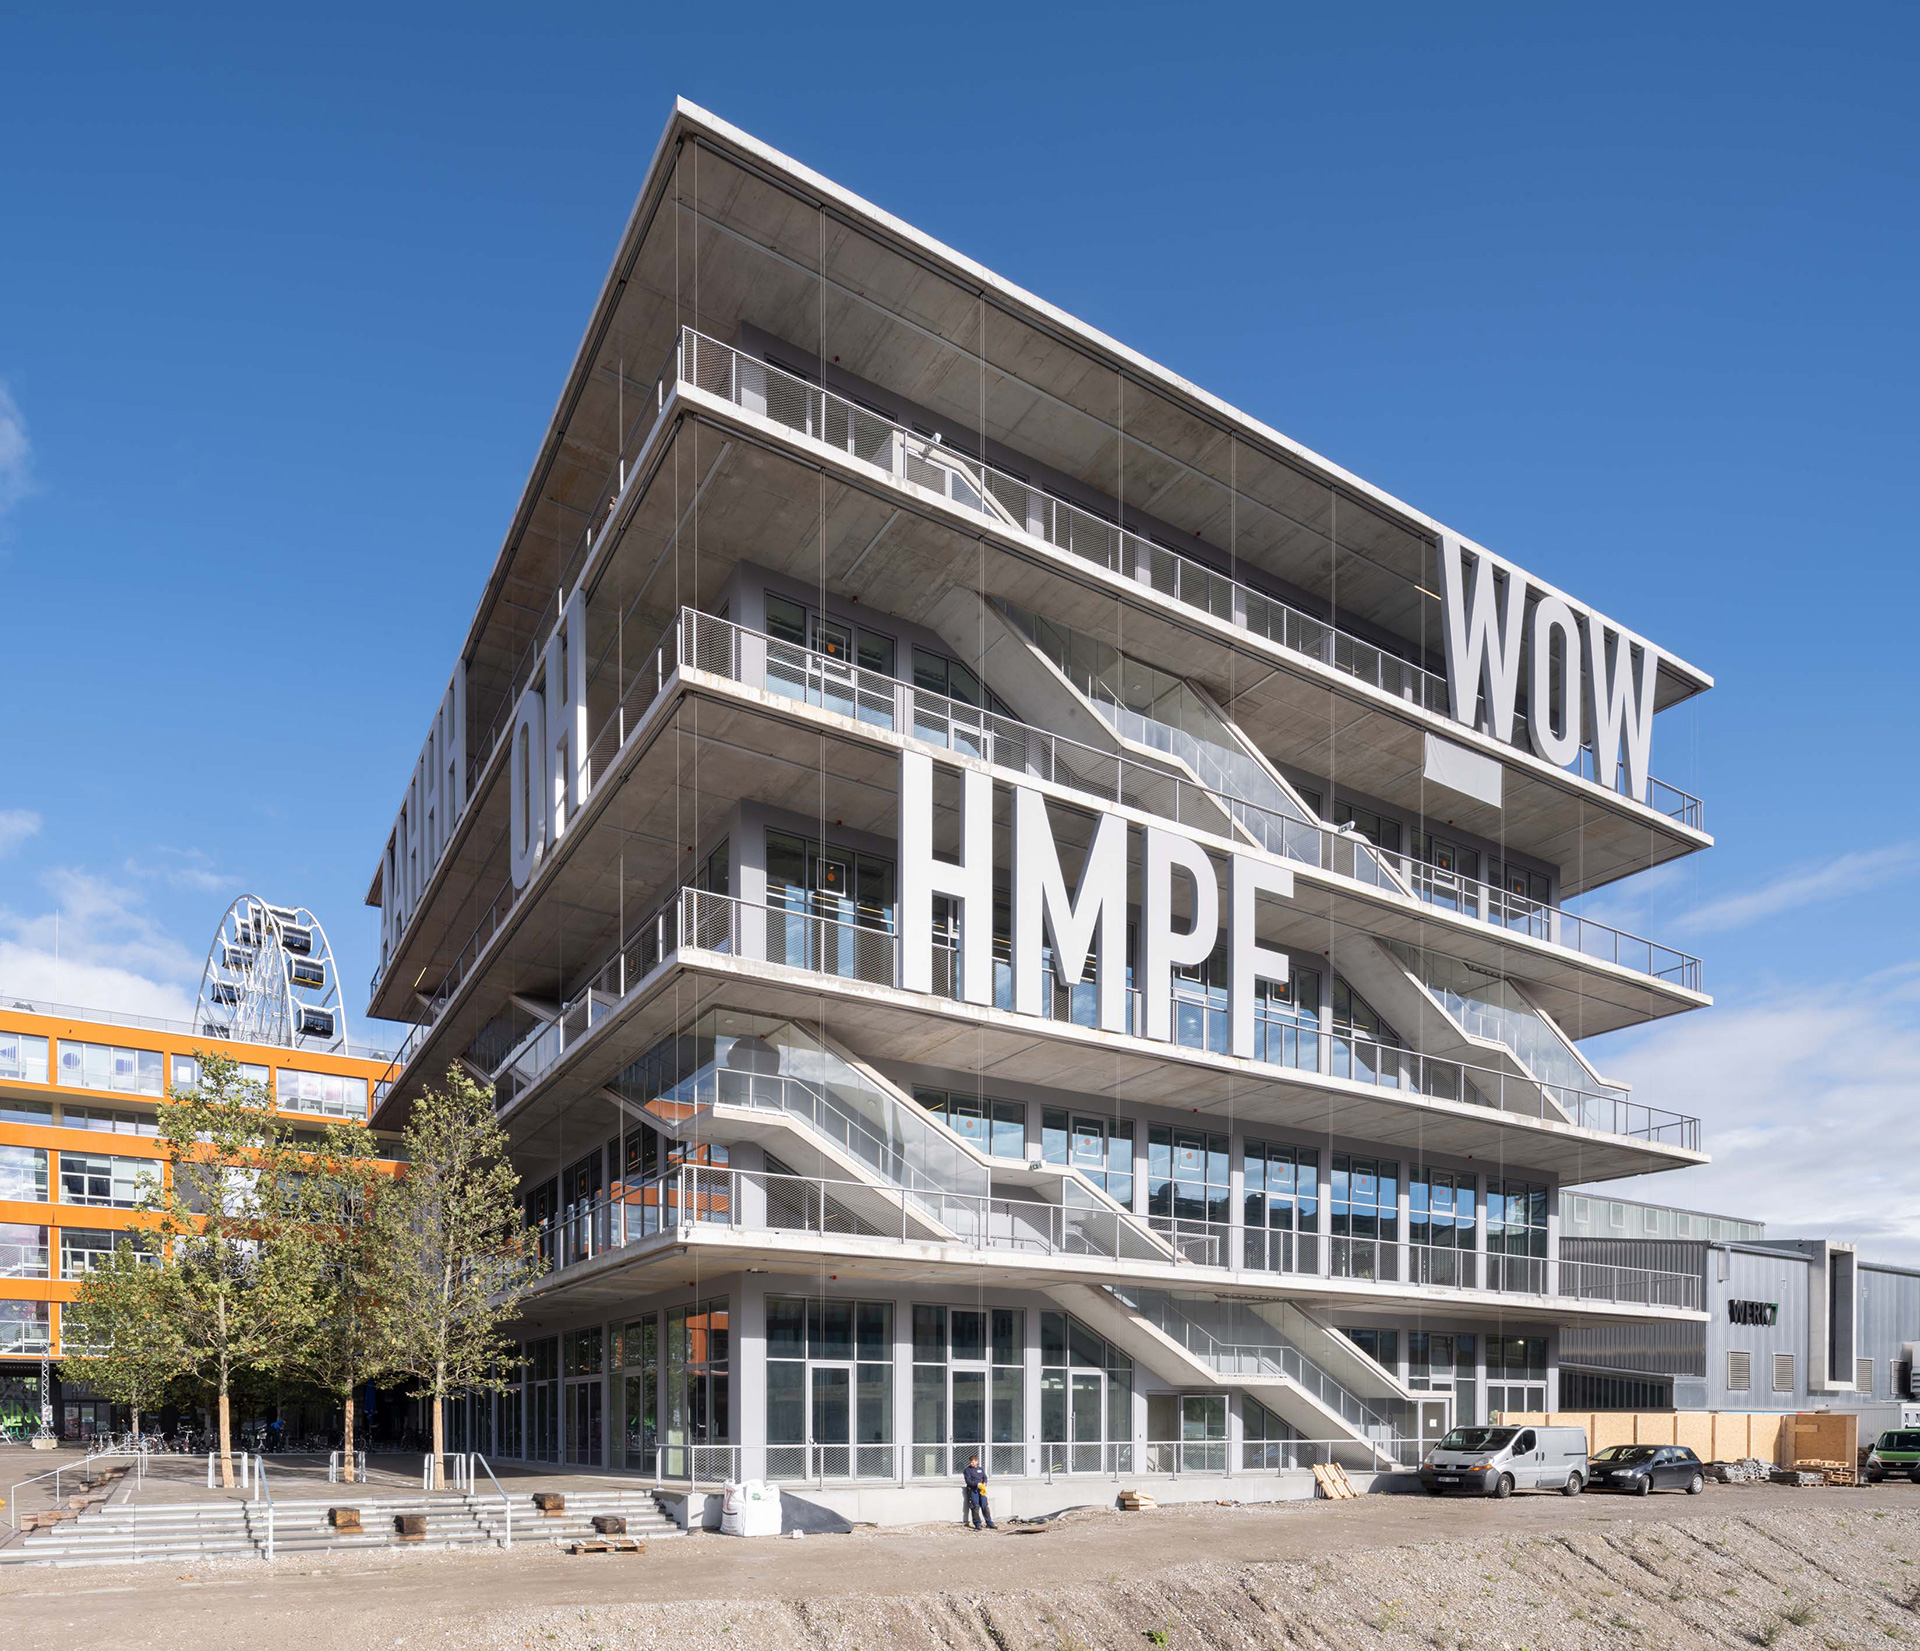 WERK12 celebrates the district's history where it is located along with upholding a contemporary vibe | WERK12 | MVRDV | STIRworld